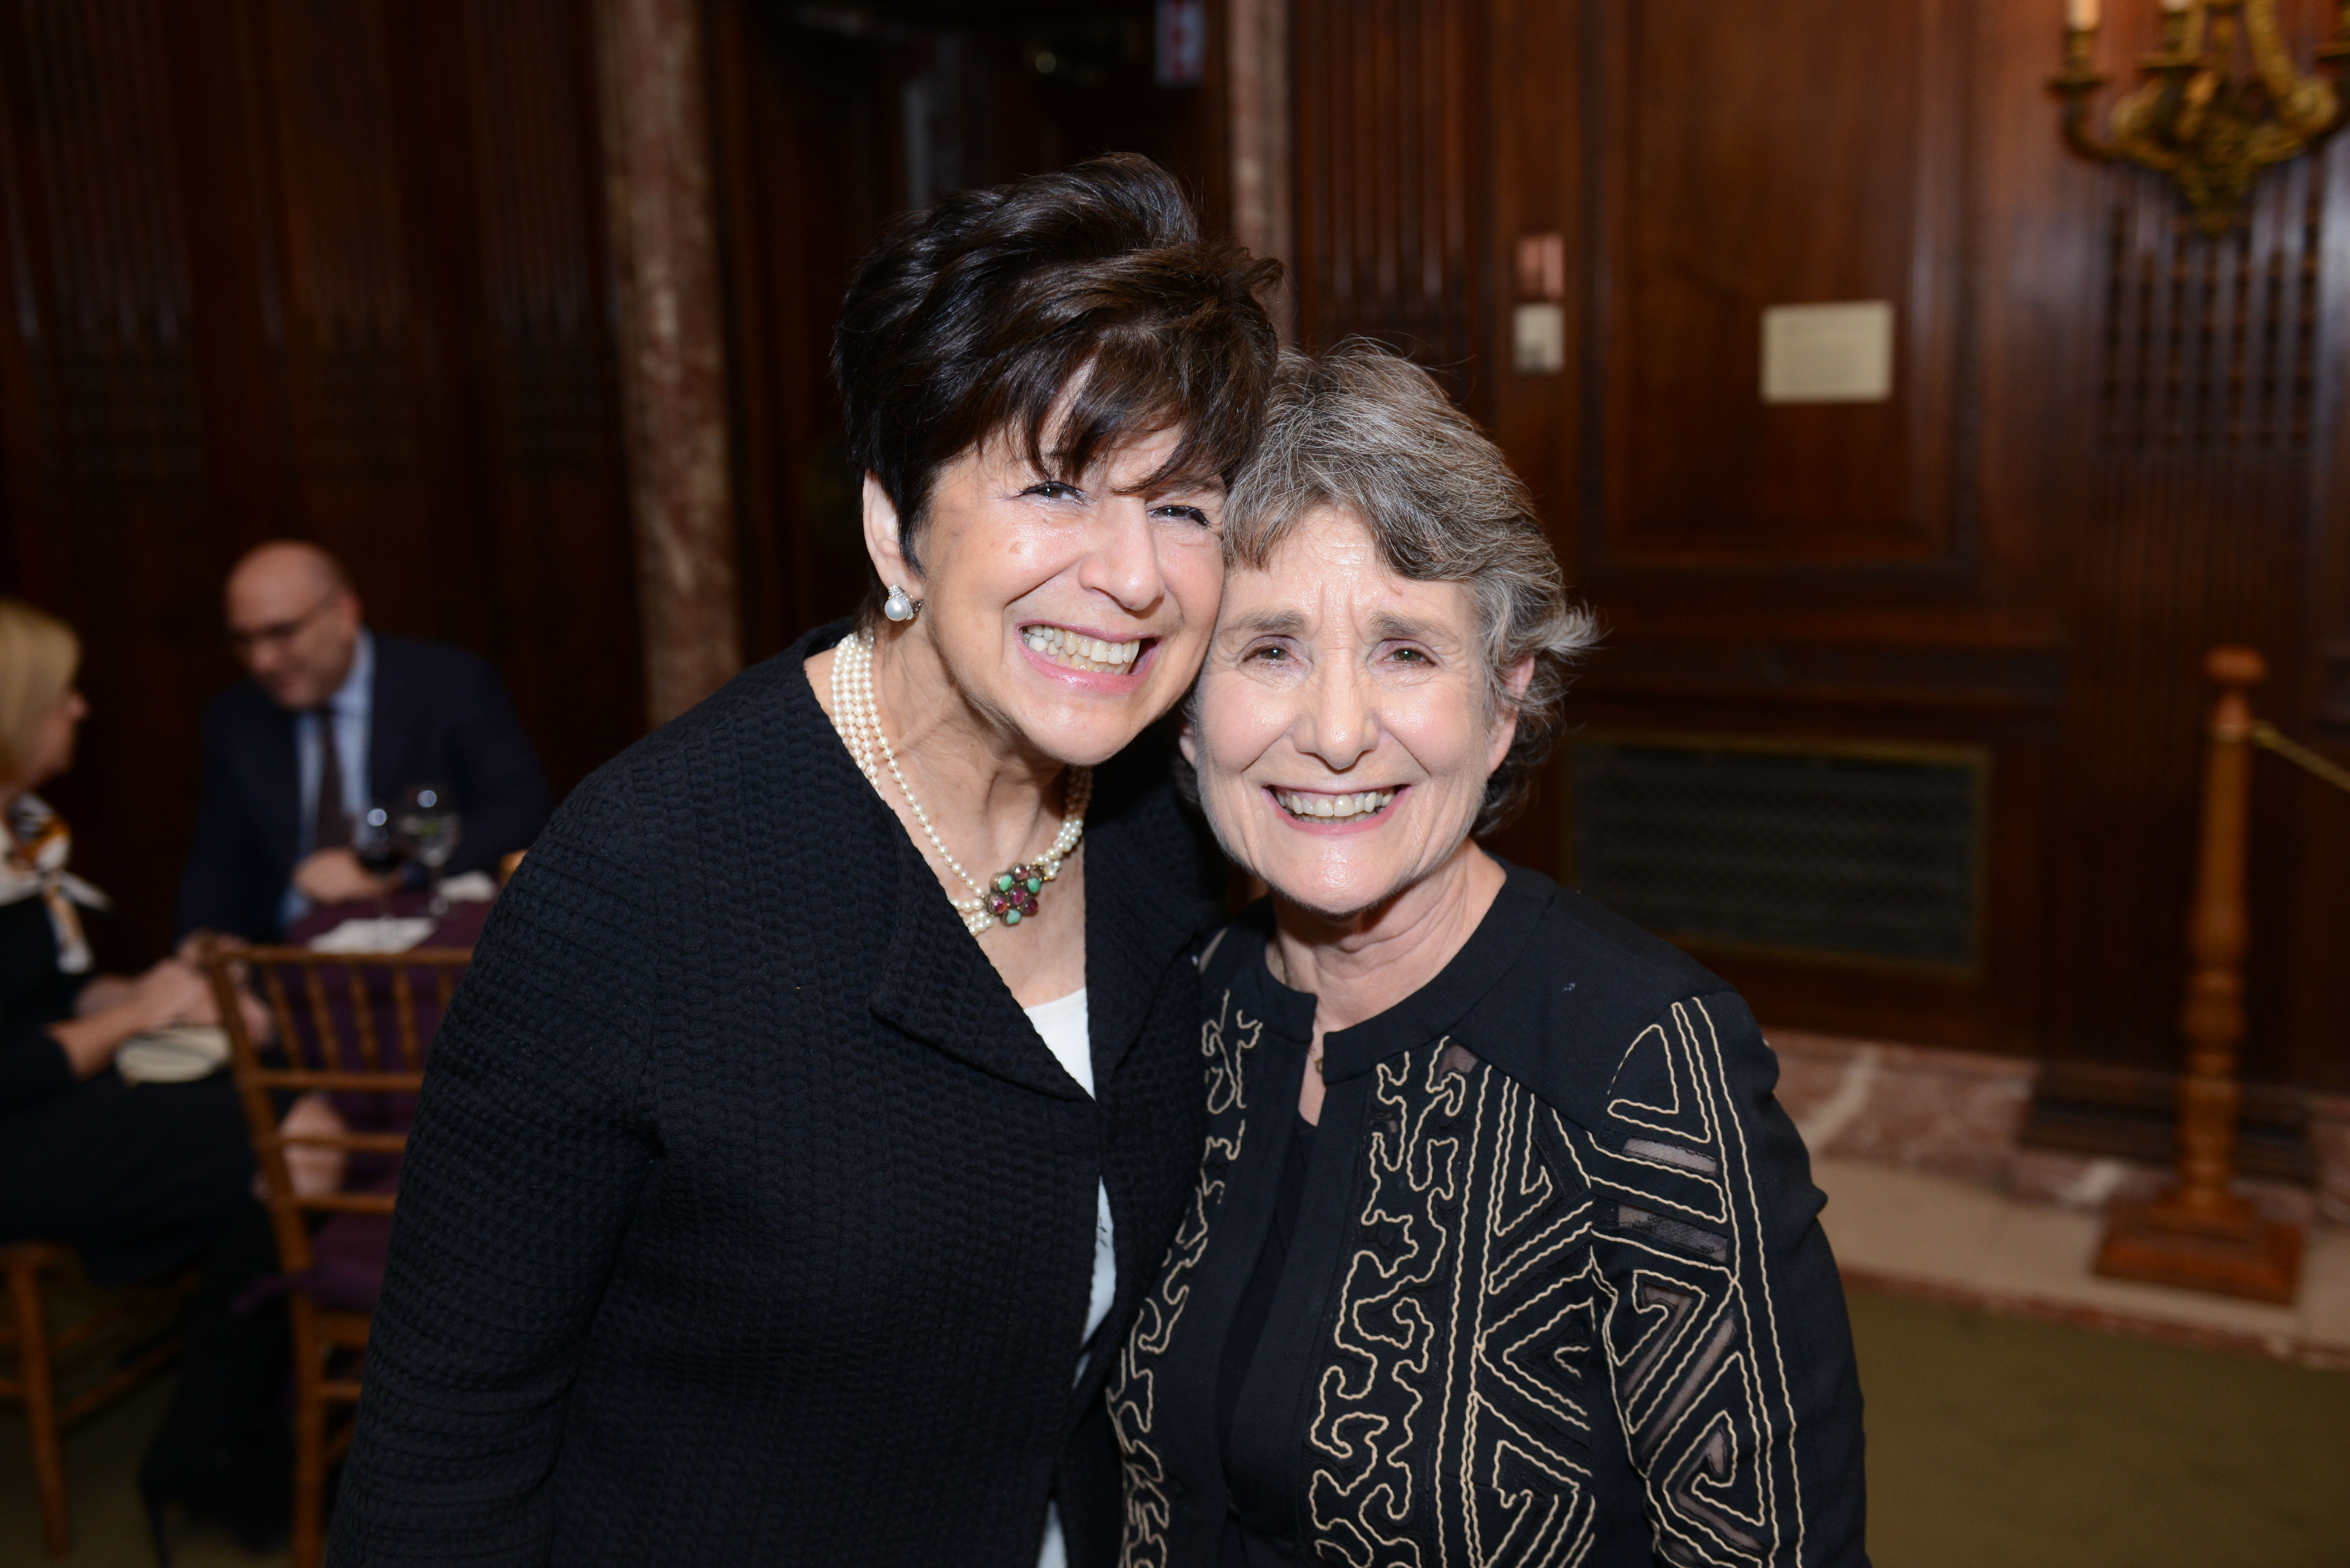 From left: Covenant Executive Director Harlene Appelman and 2004 Covenant Award Recipient Barbara Ellison Rosenblit.